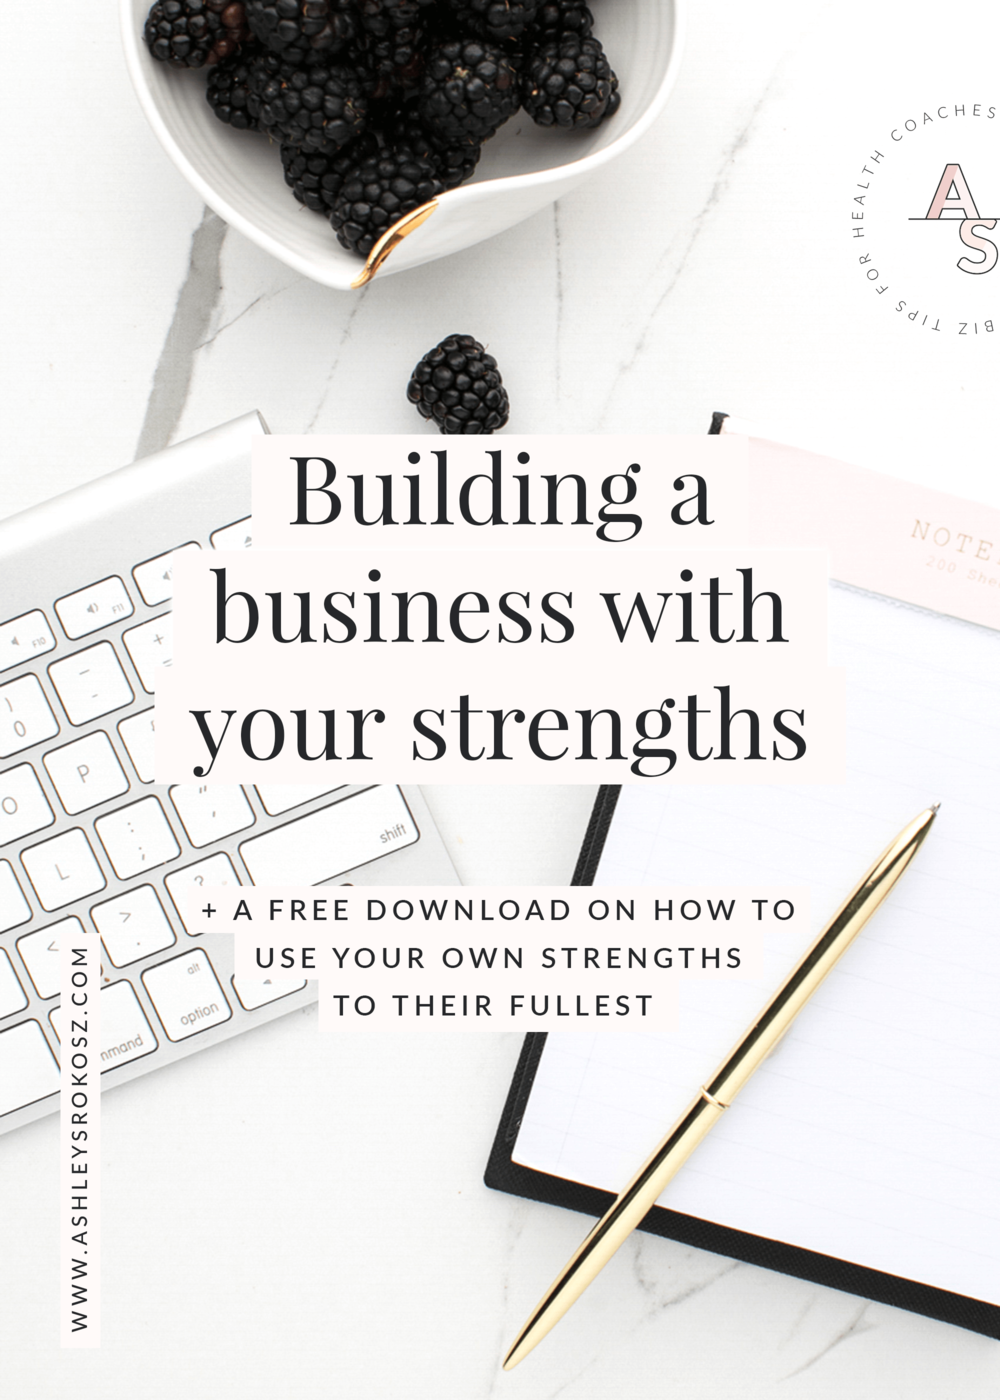 "Are you tired of building your business like everyone else, only to end up stressed out and it's still not working? Click here learn how you can build a business with YOUR unique strengths so you have more ease and less stress PLUS a free Build a Business with Your Strengths""! #healthcoach #healthcoachbusiness #nutritionist #nutritionbusiness #becomeahealthcoach #yogateacher #naturopath"